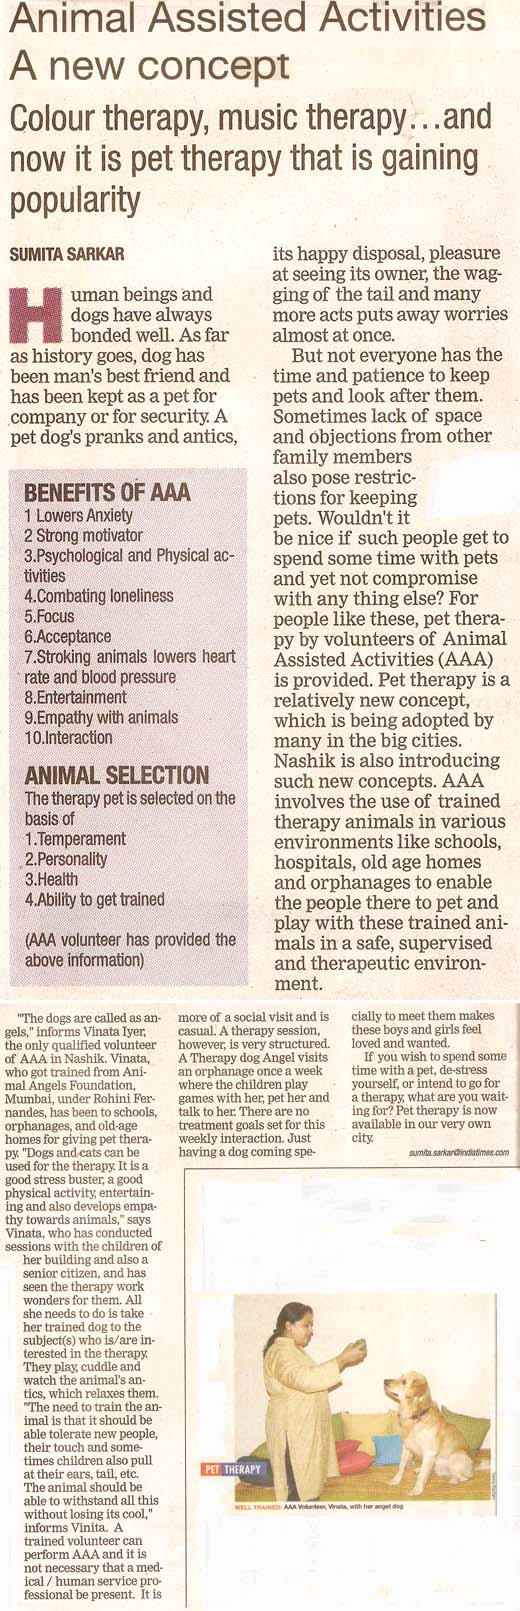 Nasik Times - Animal Assisted Activities - A New Concept